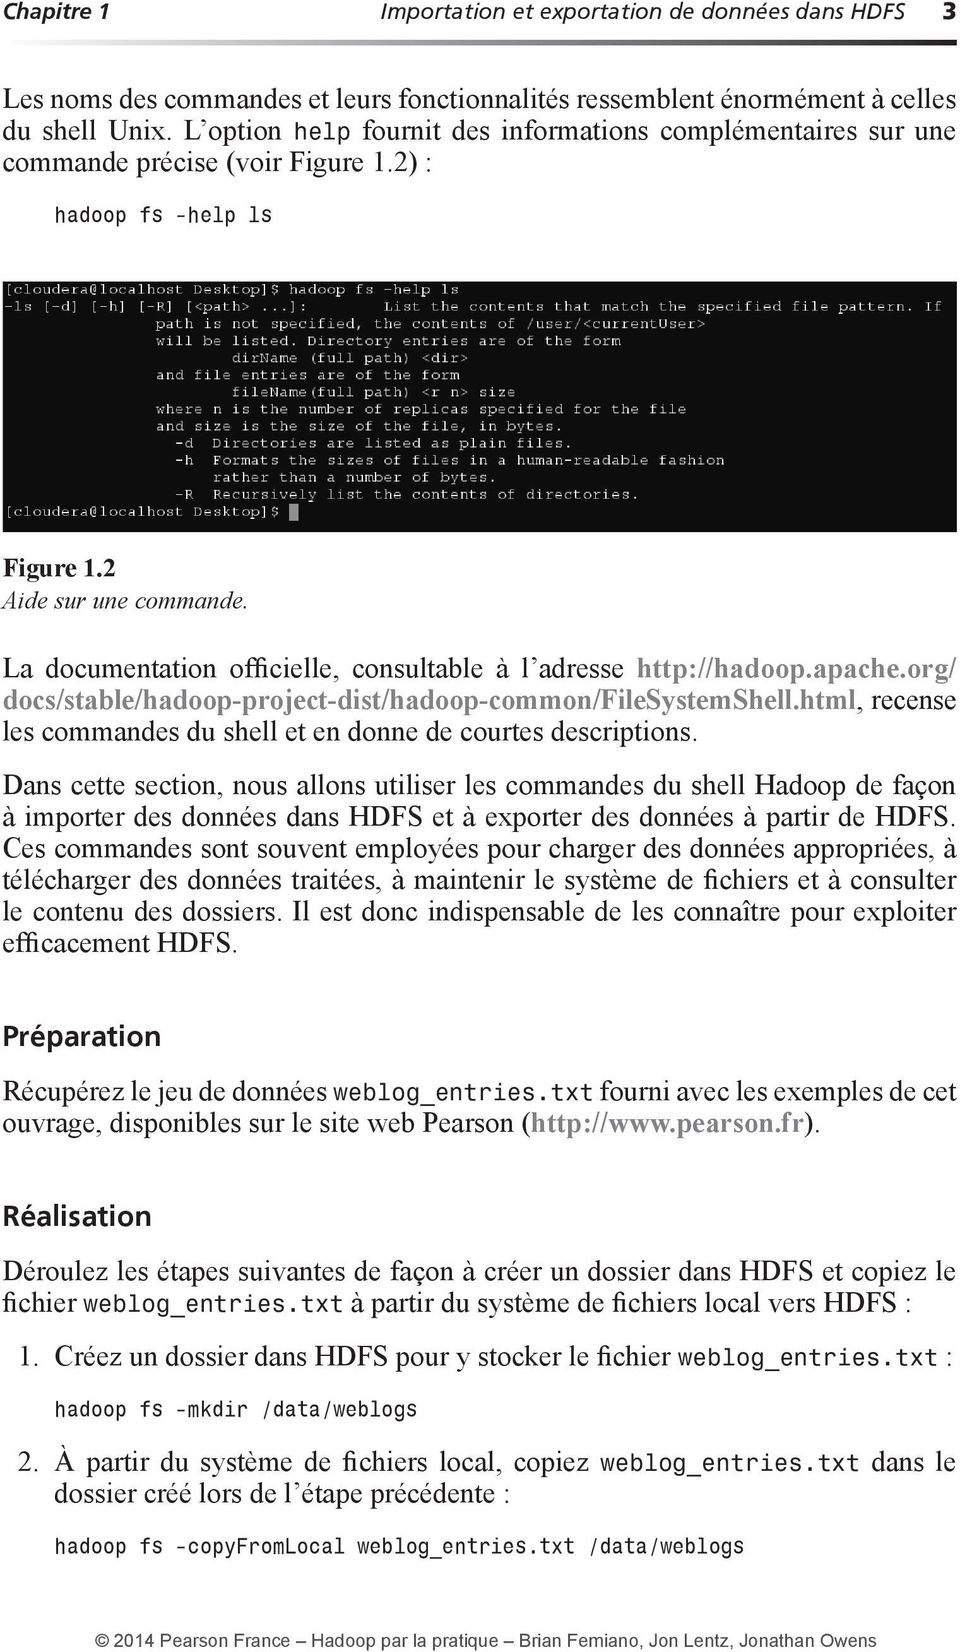 La documentation officielle, consultable à l adresse http://hadoop.apache.org/ docs/stable/hadoop-project-dist/hadoop-common/filesystemshell.